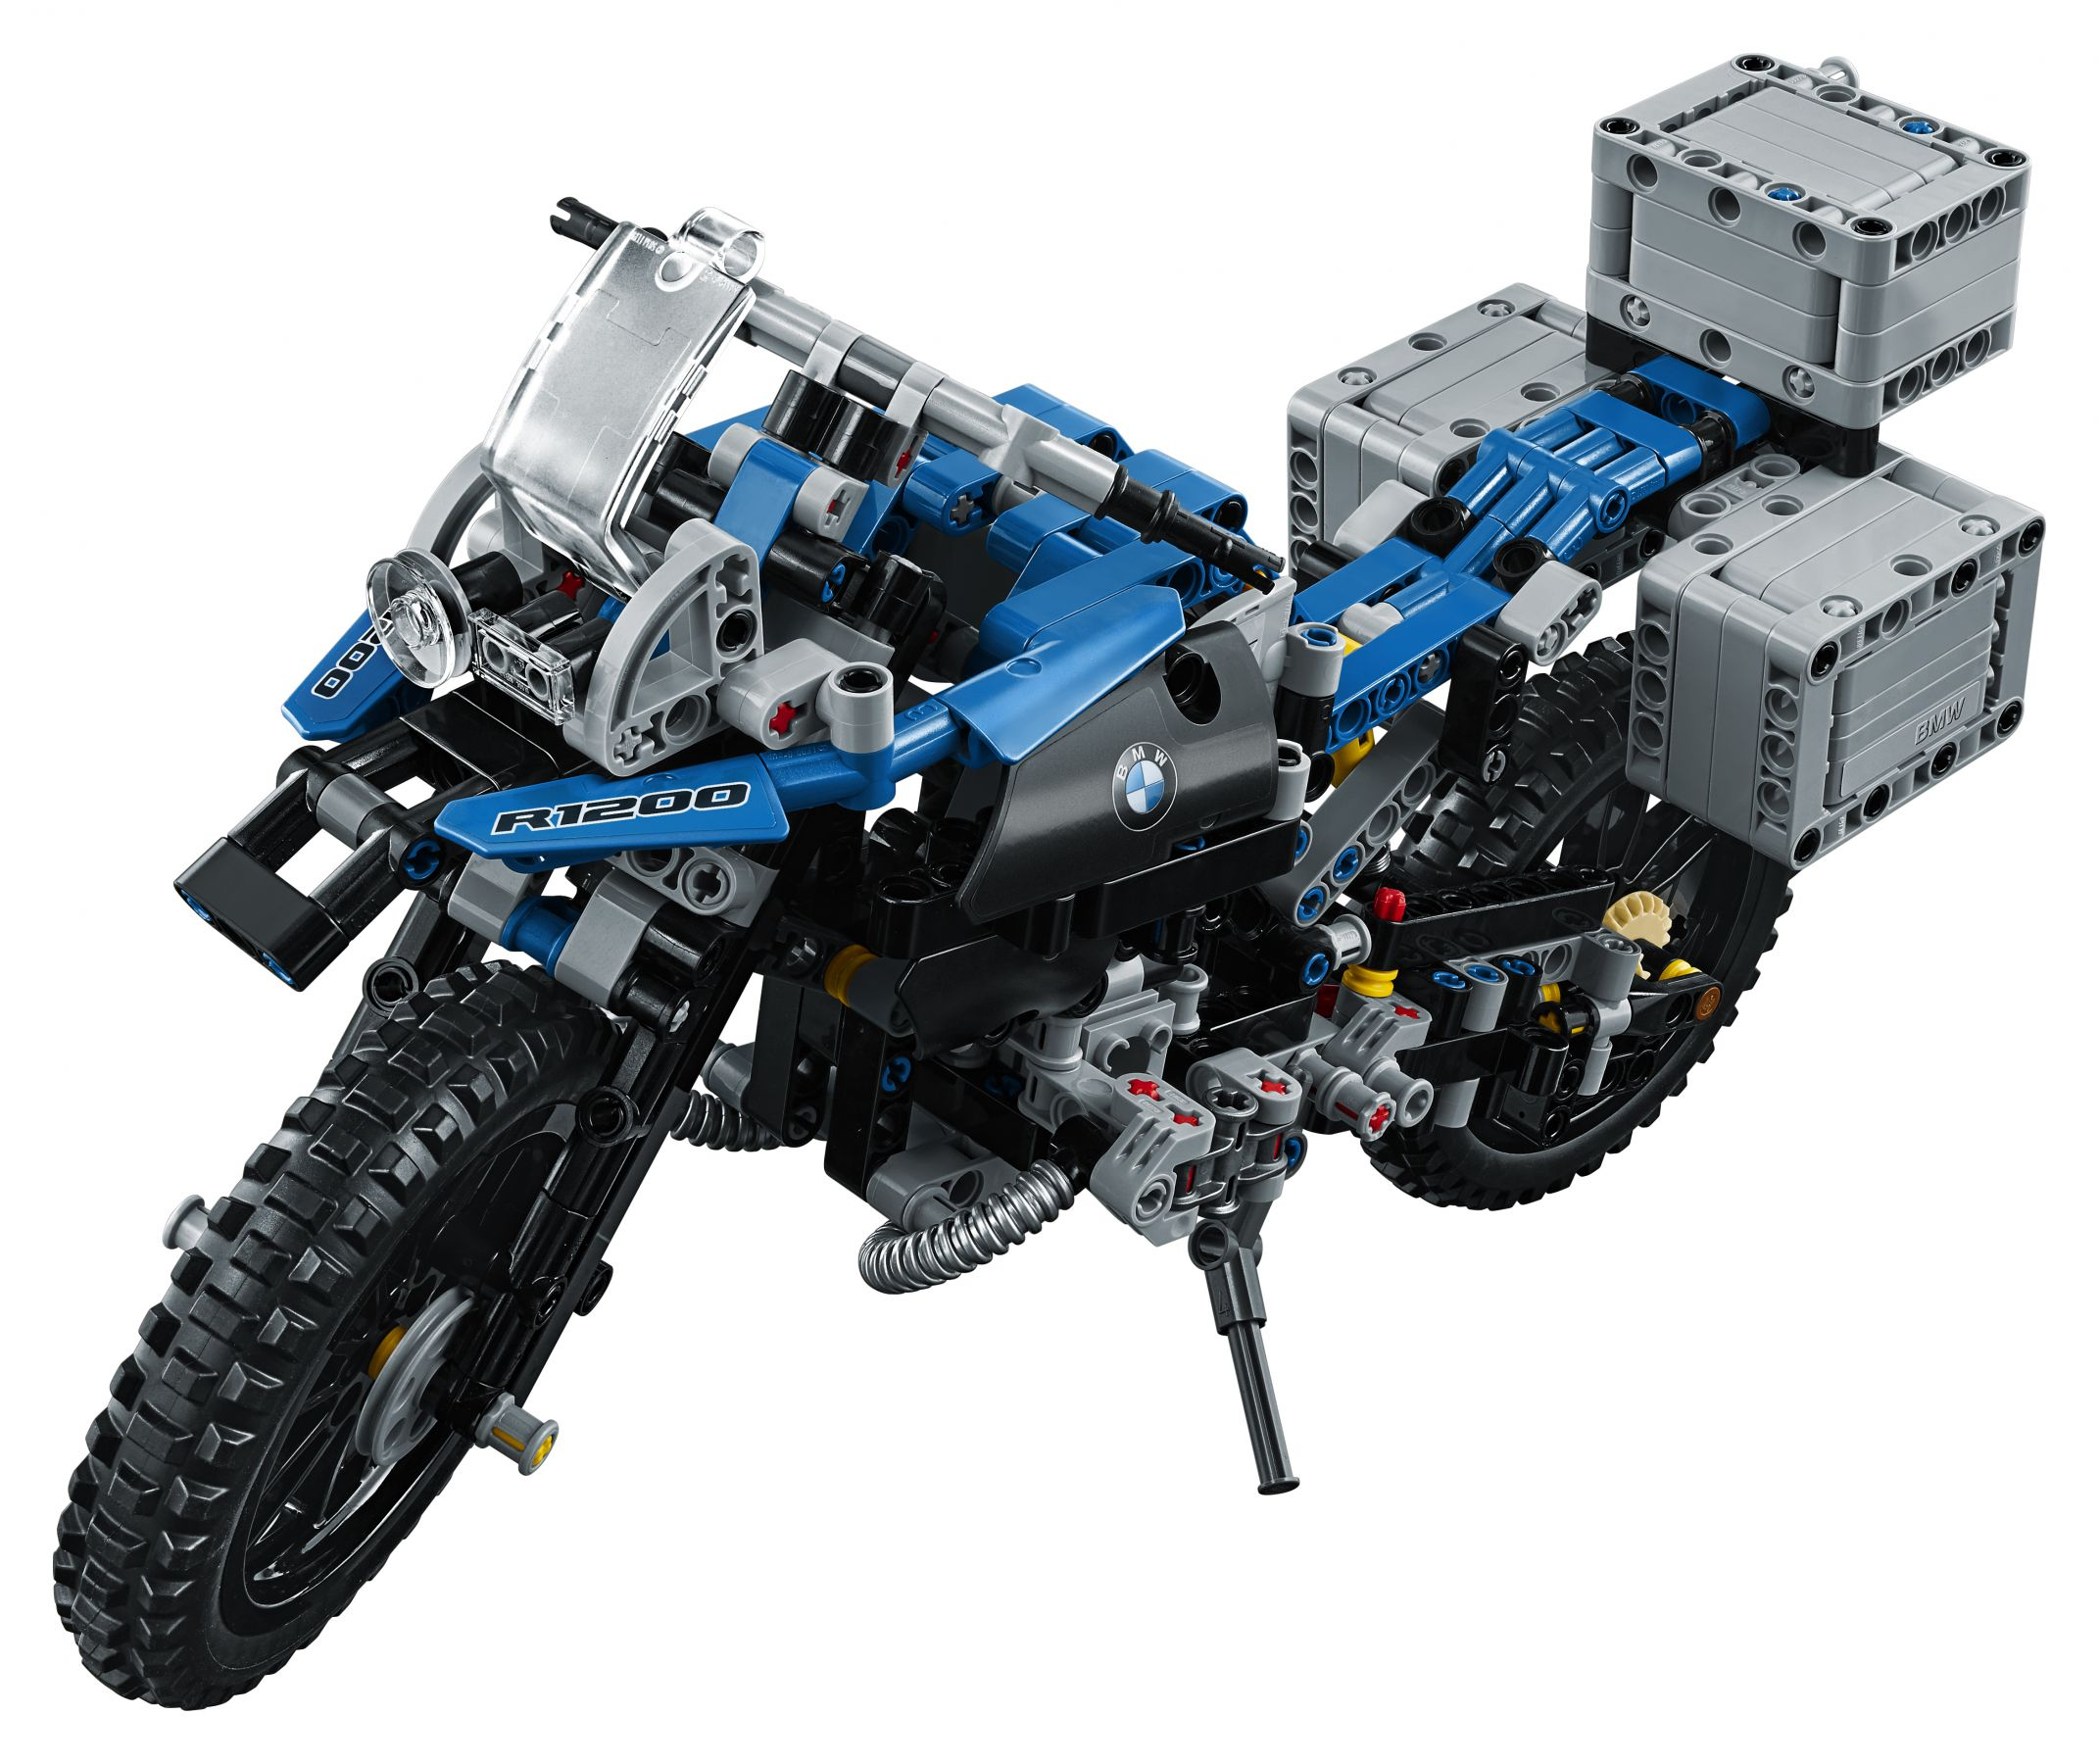 LEGO Technic 42063 BMW R 1200 GS Adventure LEGO_42063_bmw-R-1200-GS-Adventure_img3.jpg